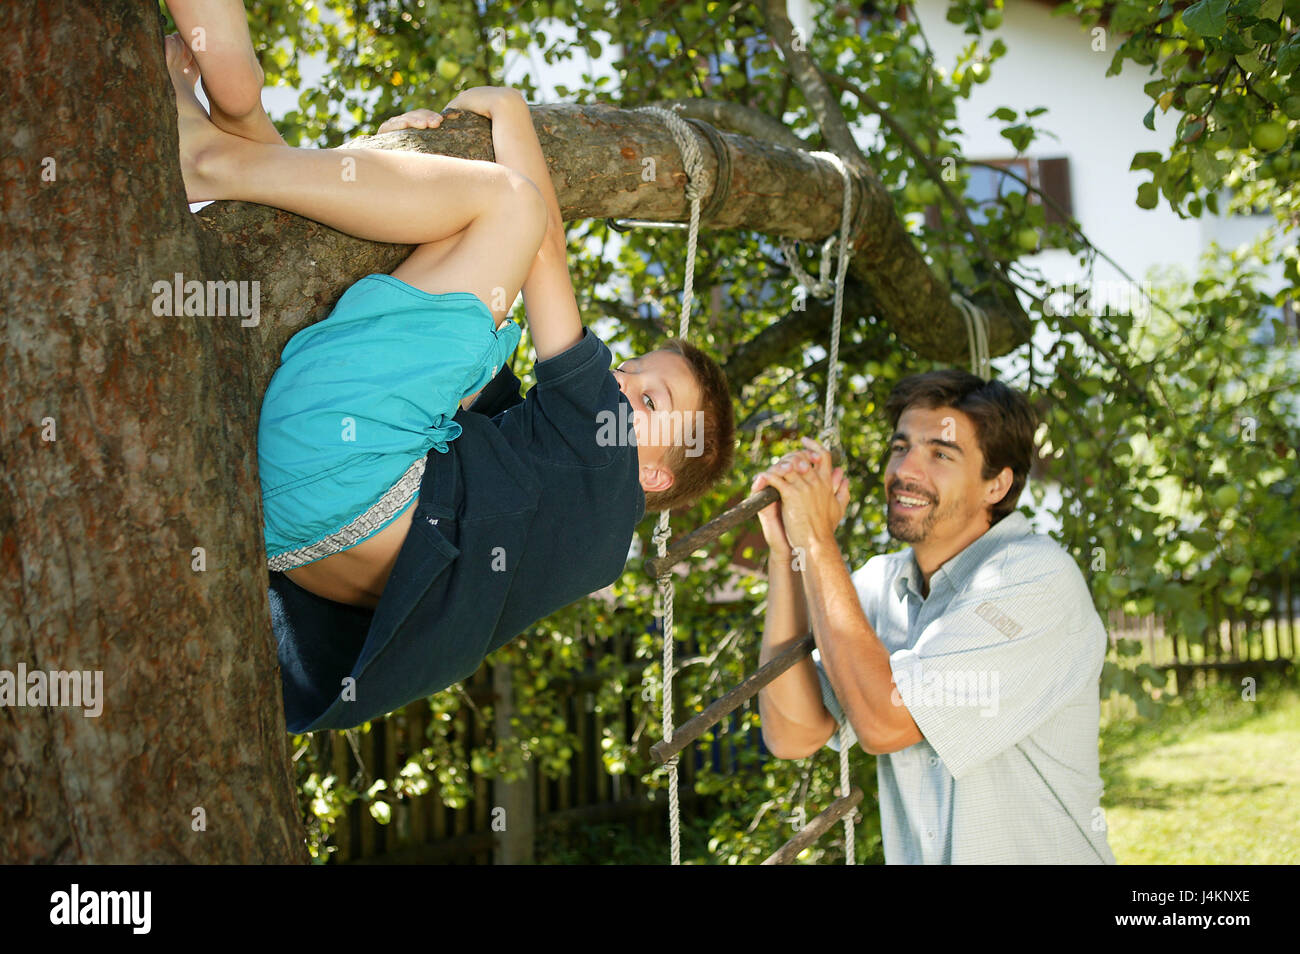 Garden, boy, barefoot, tree climb, watch father, family, man, Alone educating, son, child pay attention, play, skill, Stock Photo